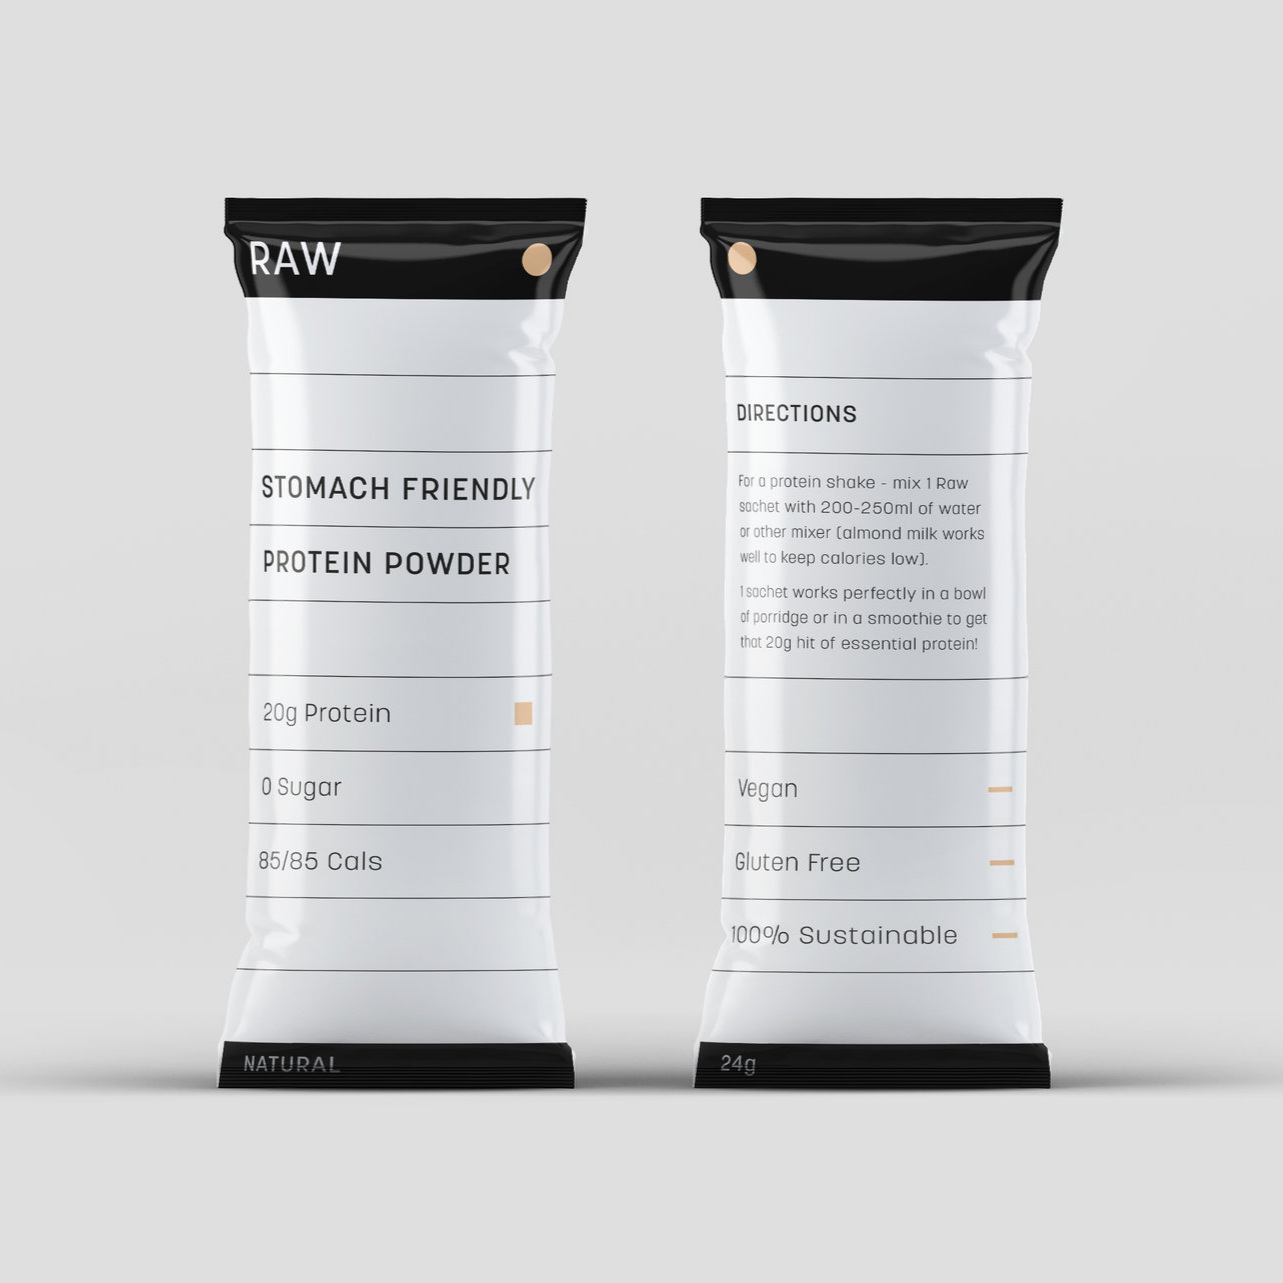 Raw-Protein_Packaging-Design_Natural.jpg